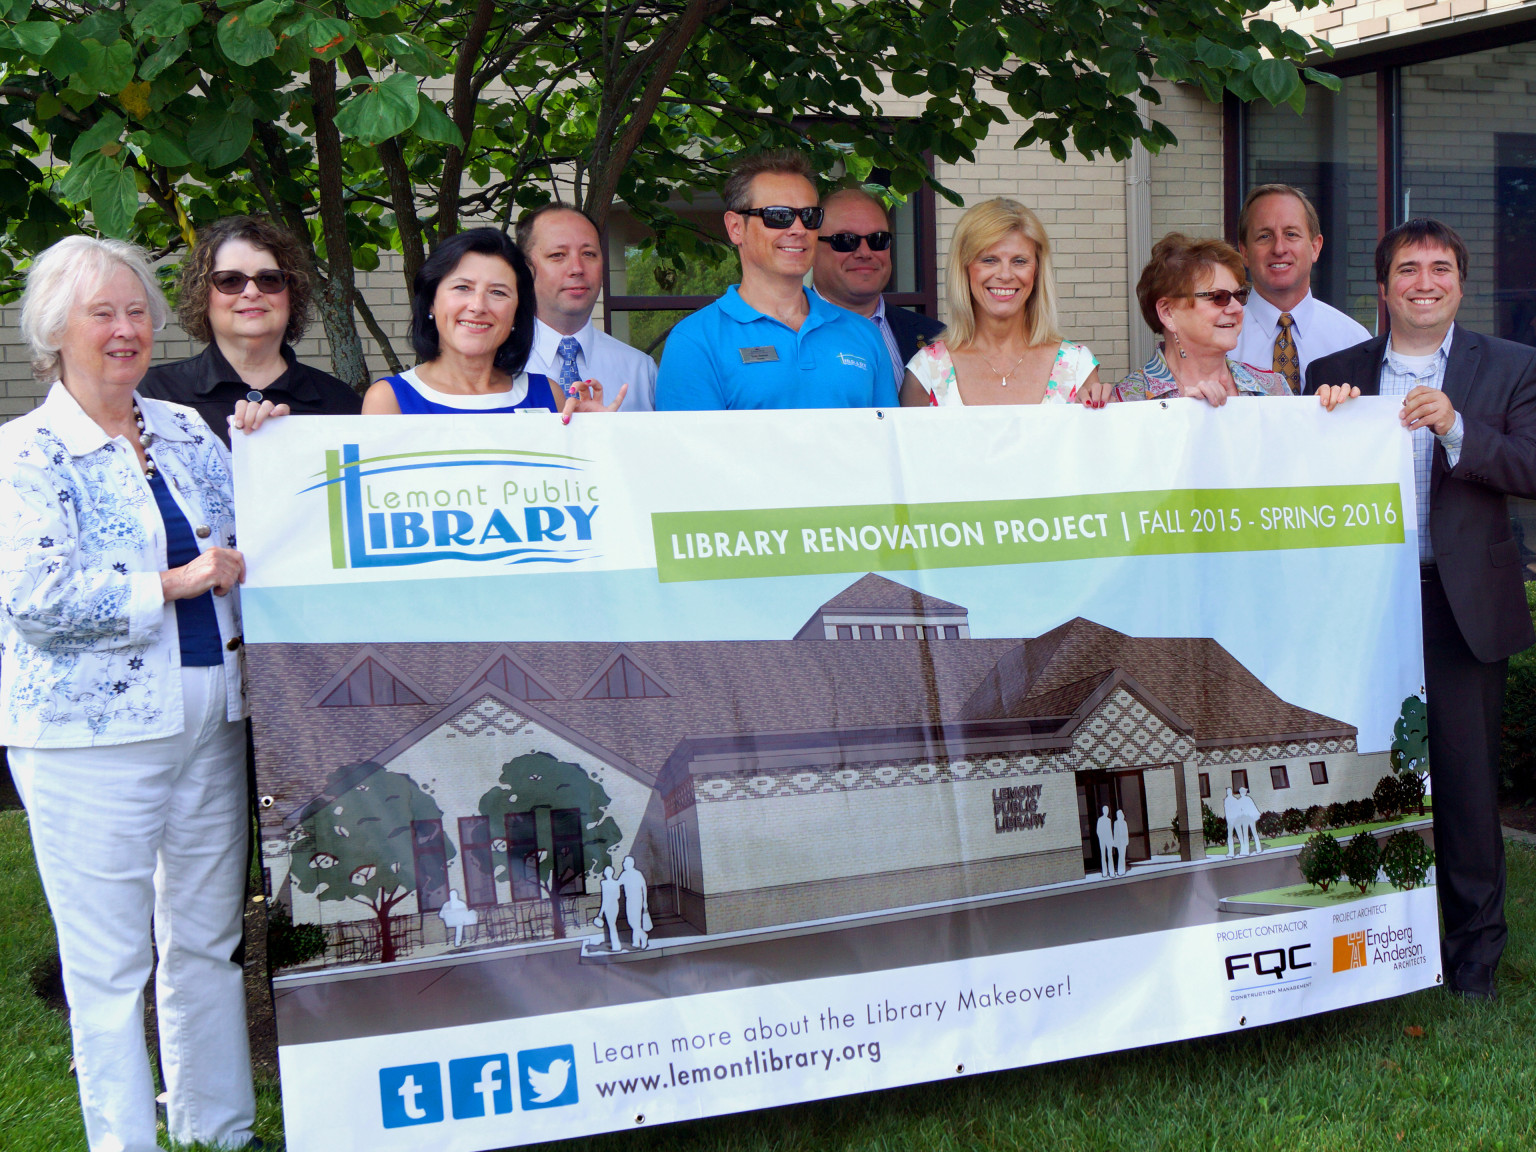 Groundbreaking: Lemont Public Library